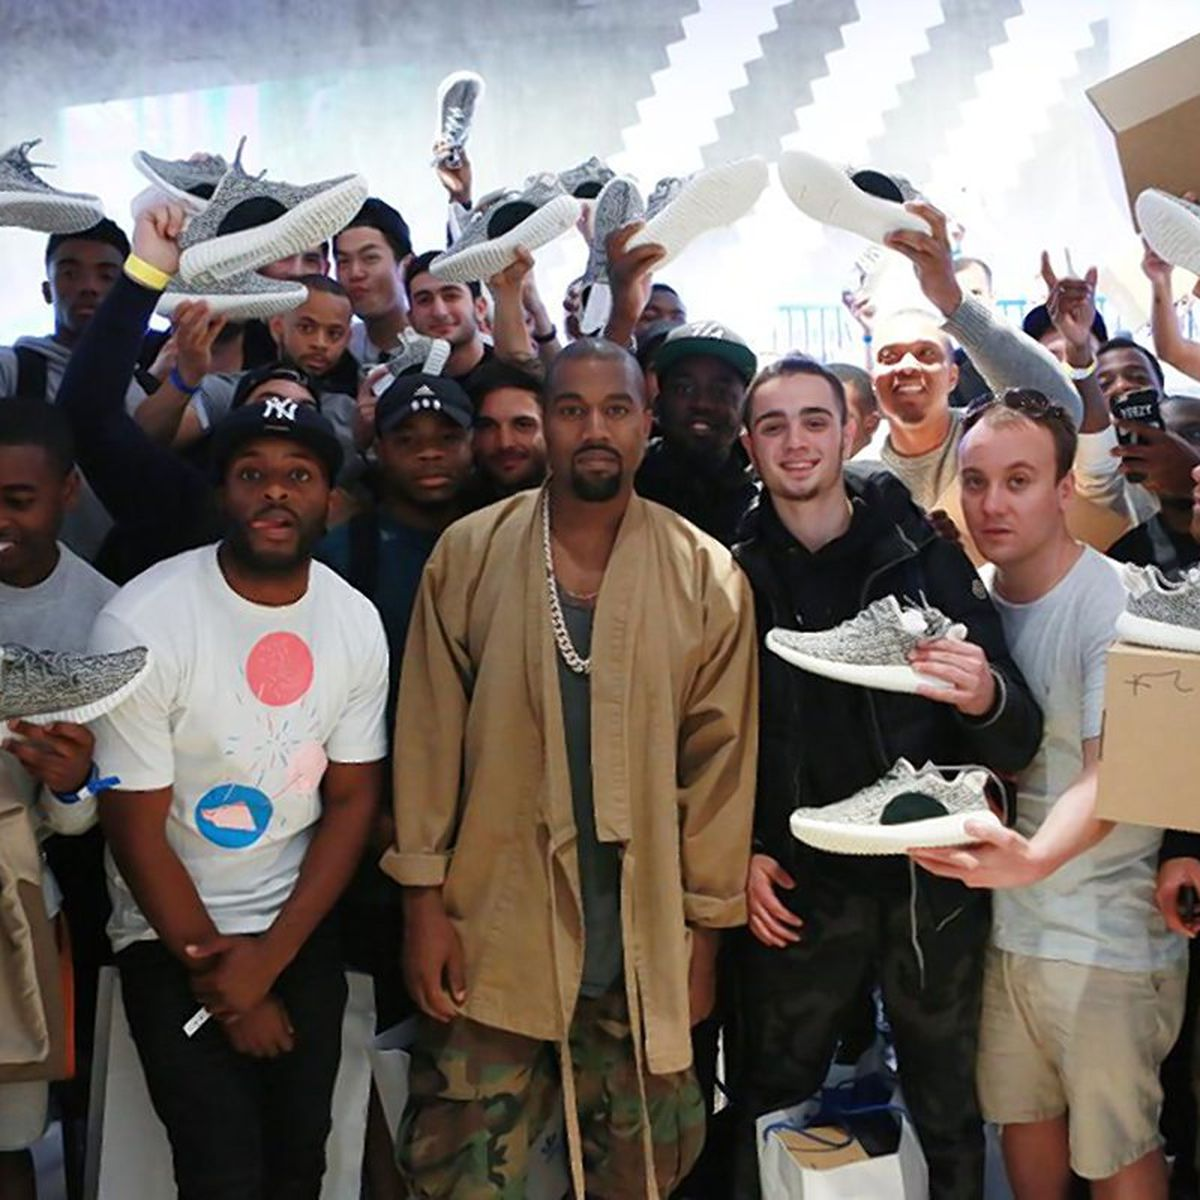 Kanye at the launch of his brand Yeezy 350s.